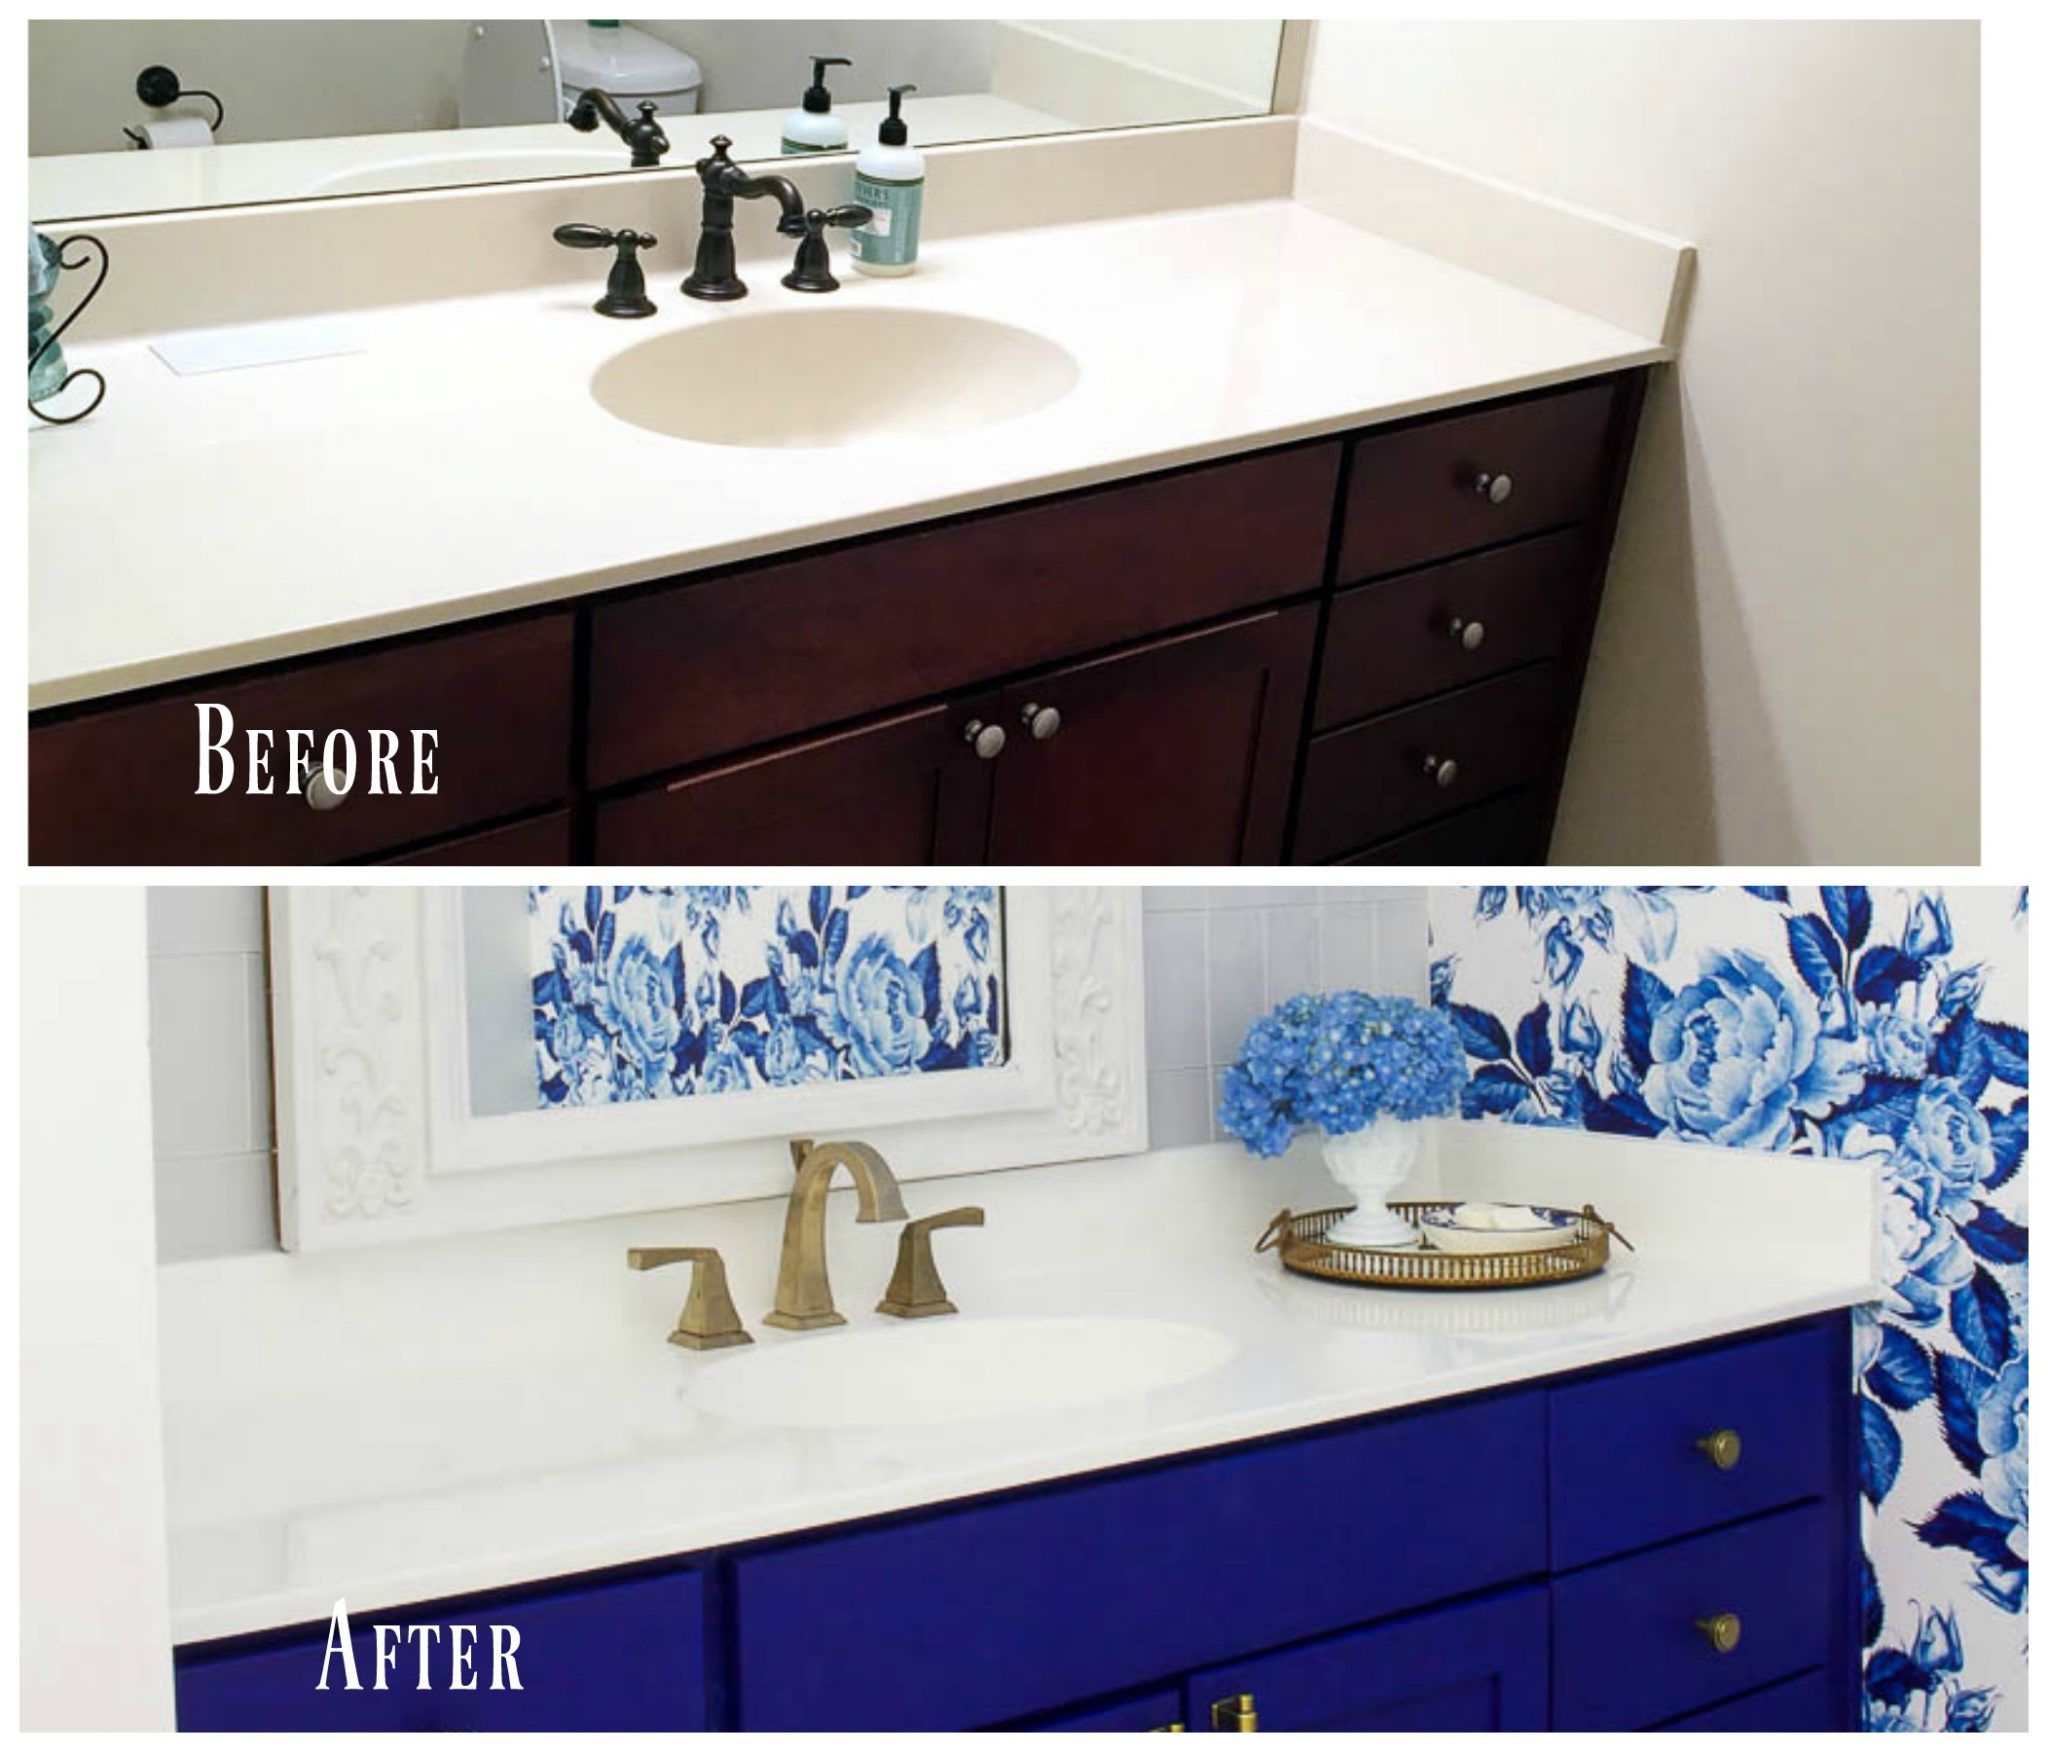 Diy Painted Bathroom Countertop And Sink Diy Bathroom Decor